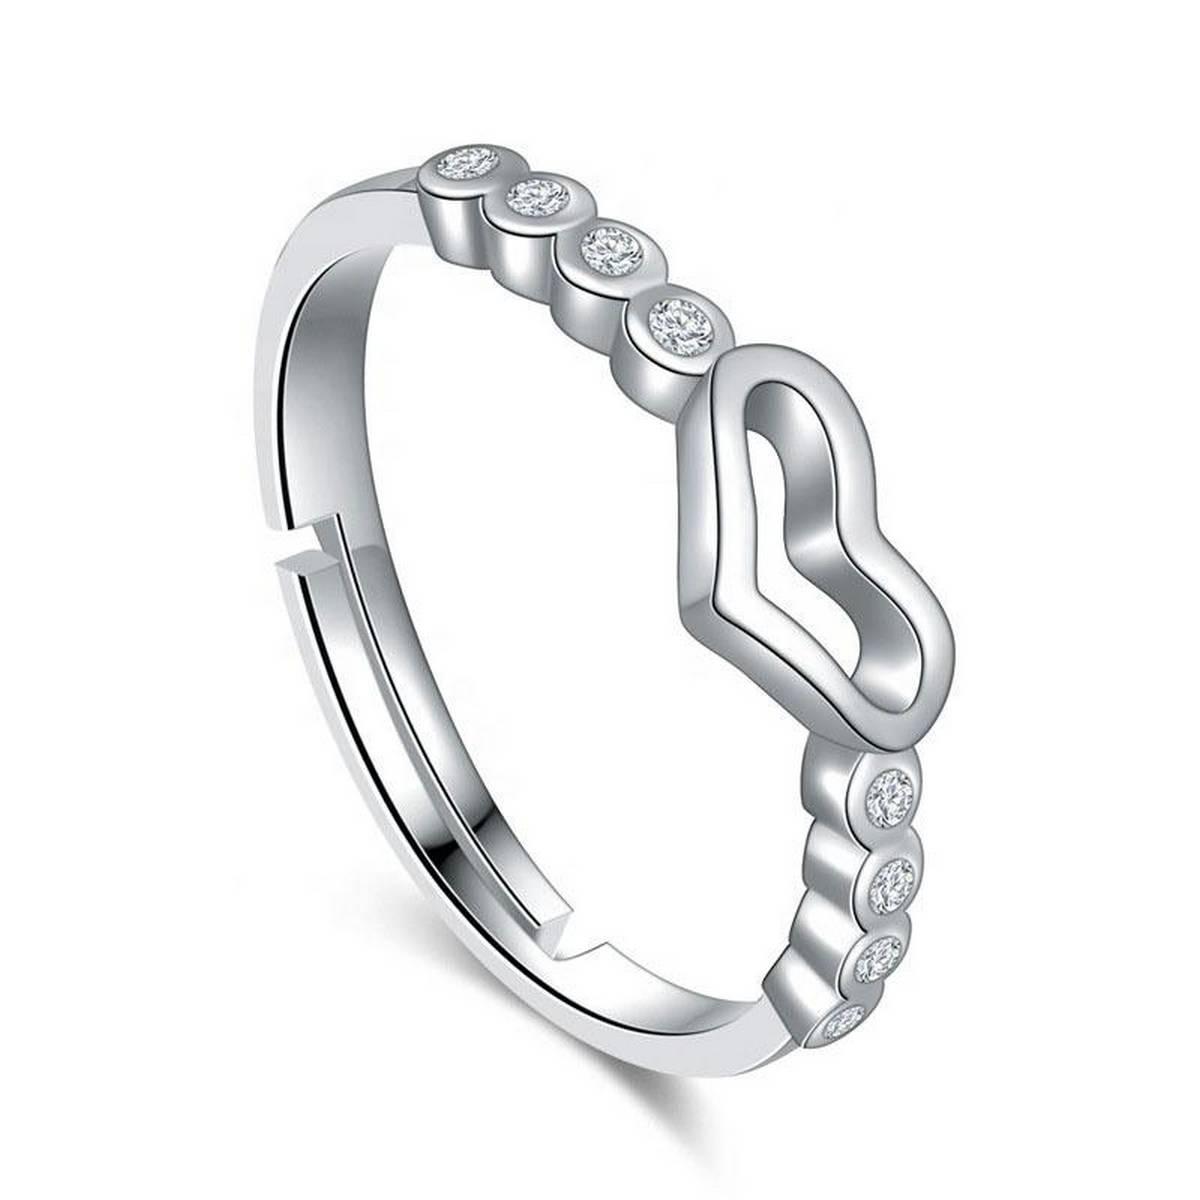 Fashion SS Wedding Collection 925 Silver Plated Adjustable Love Inlaid Heart Shape CZ Diamond Rings for Girls & Women - NJ098